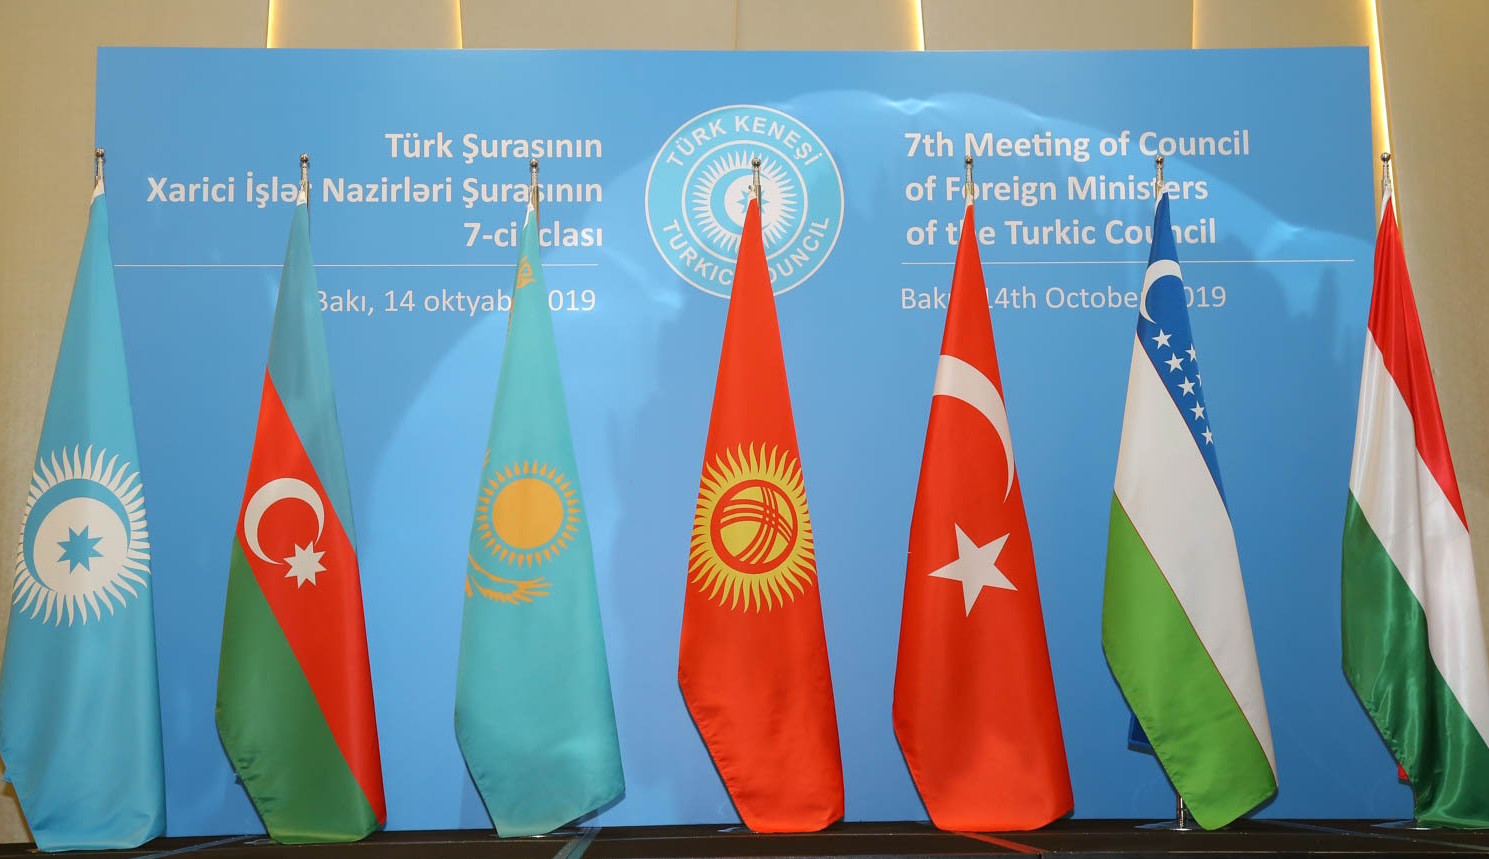 Chairmanship in Turkic Council passes to Azerbaijan